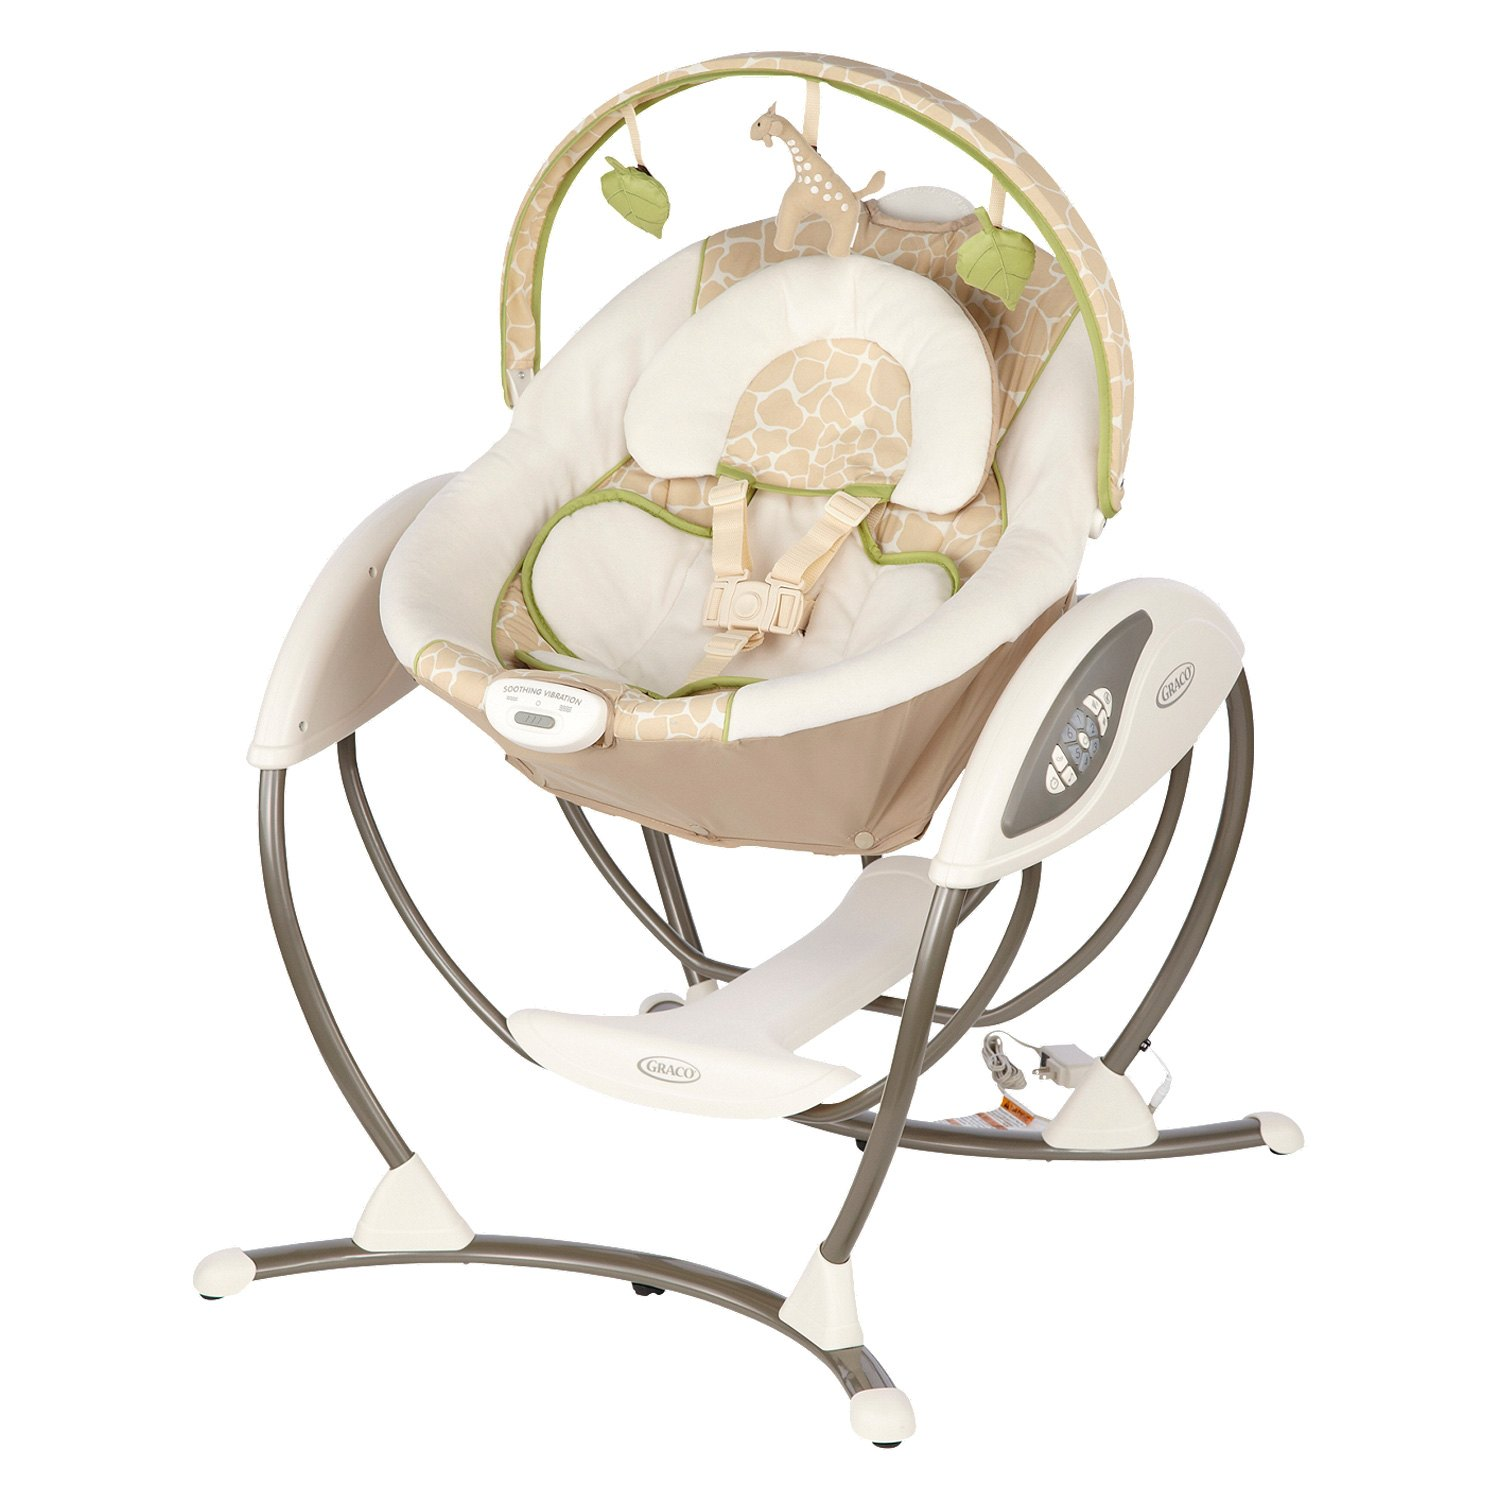 Question About Swings BabyCenter Graco Soothing System Glider